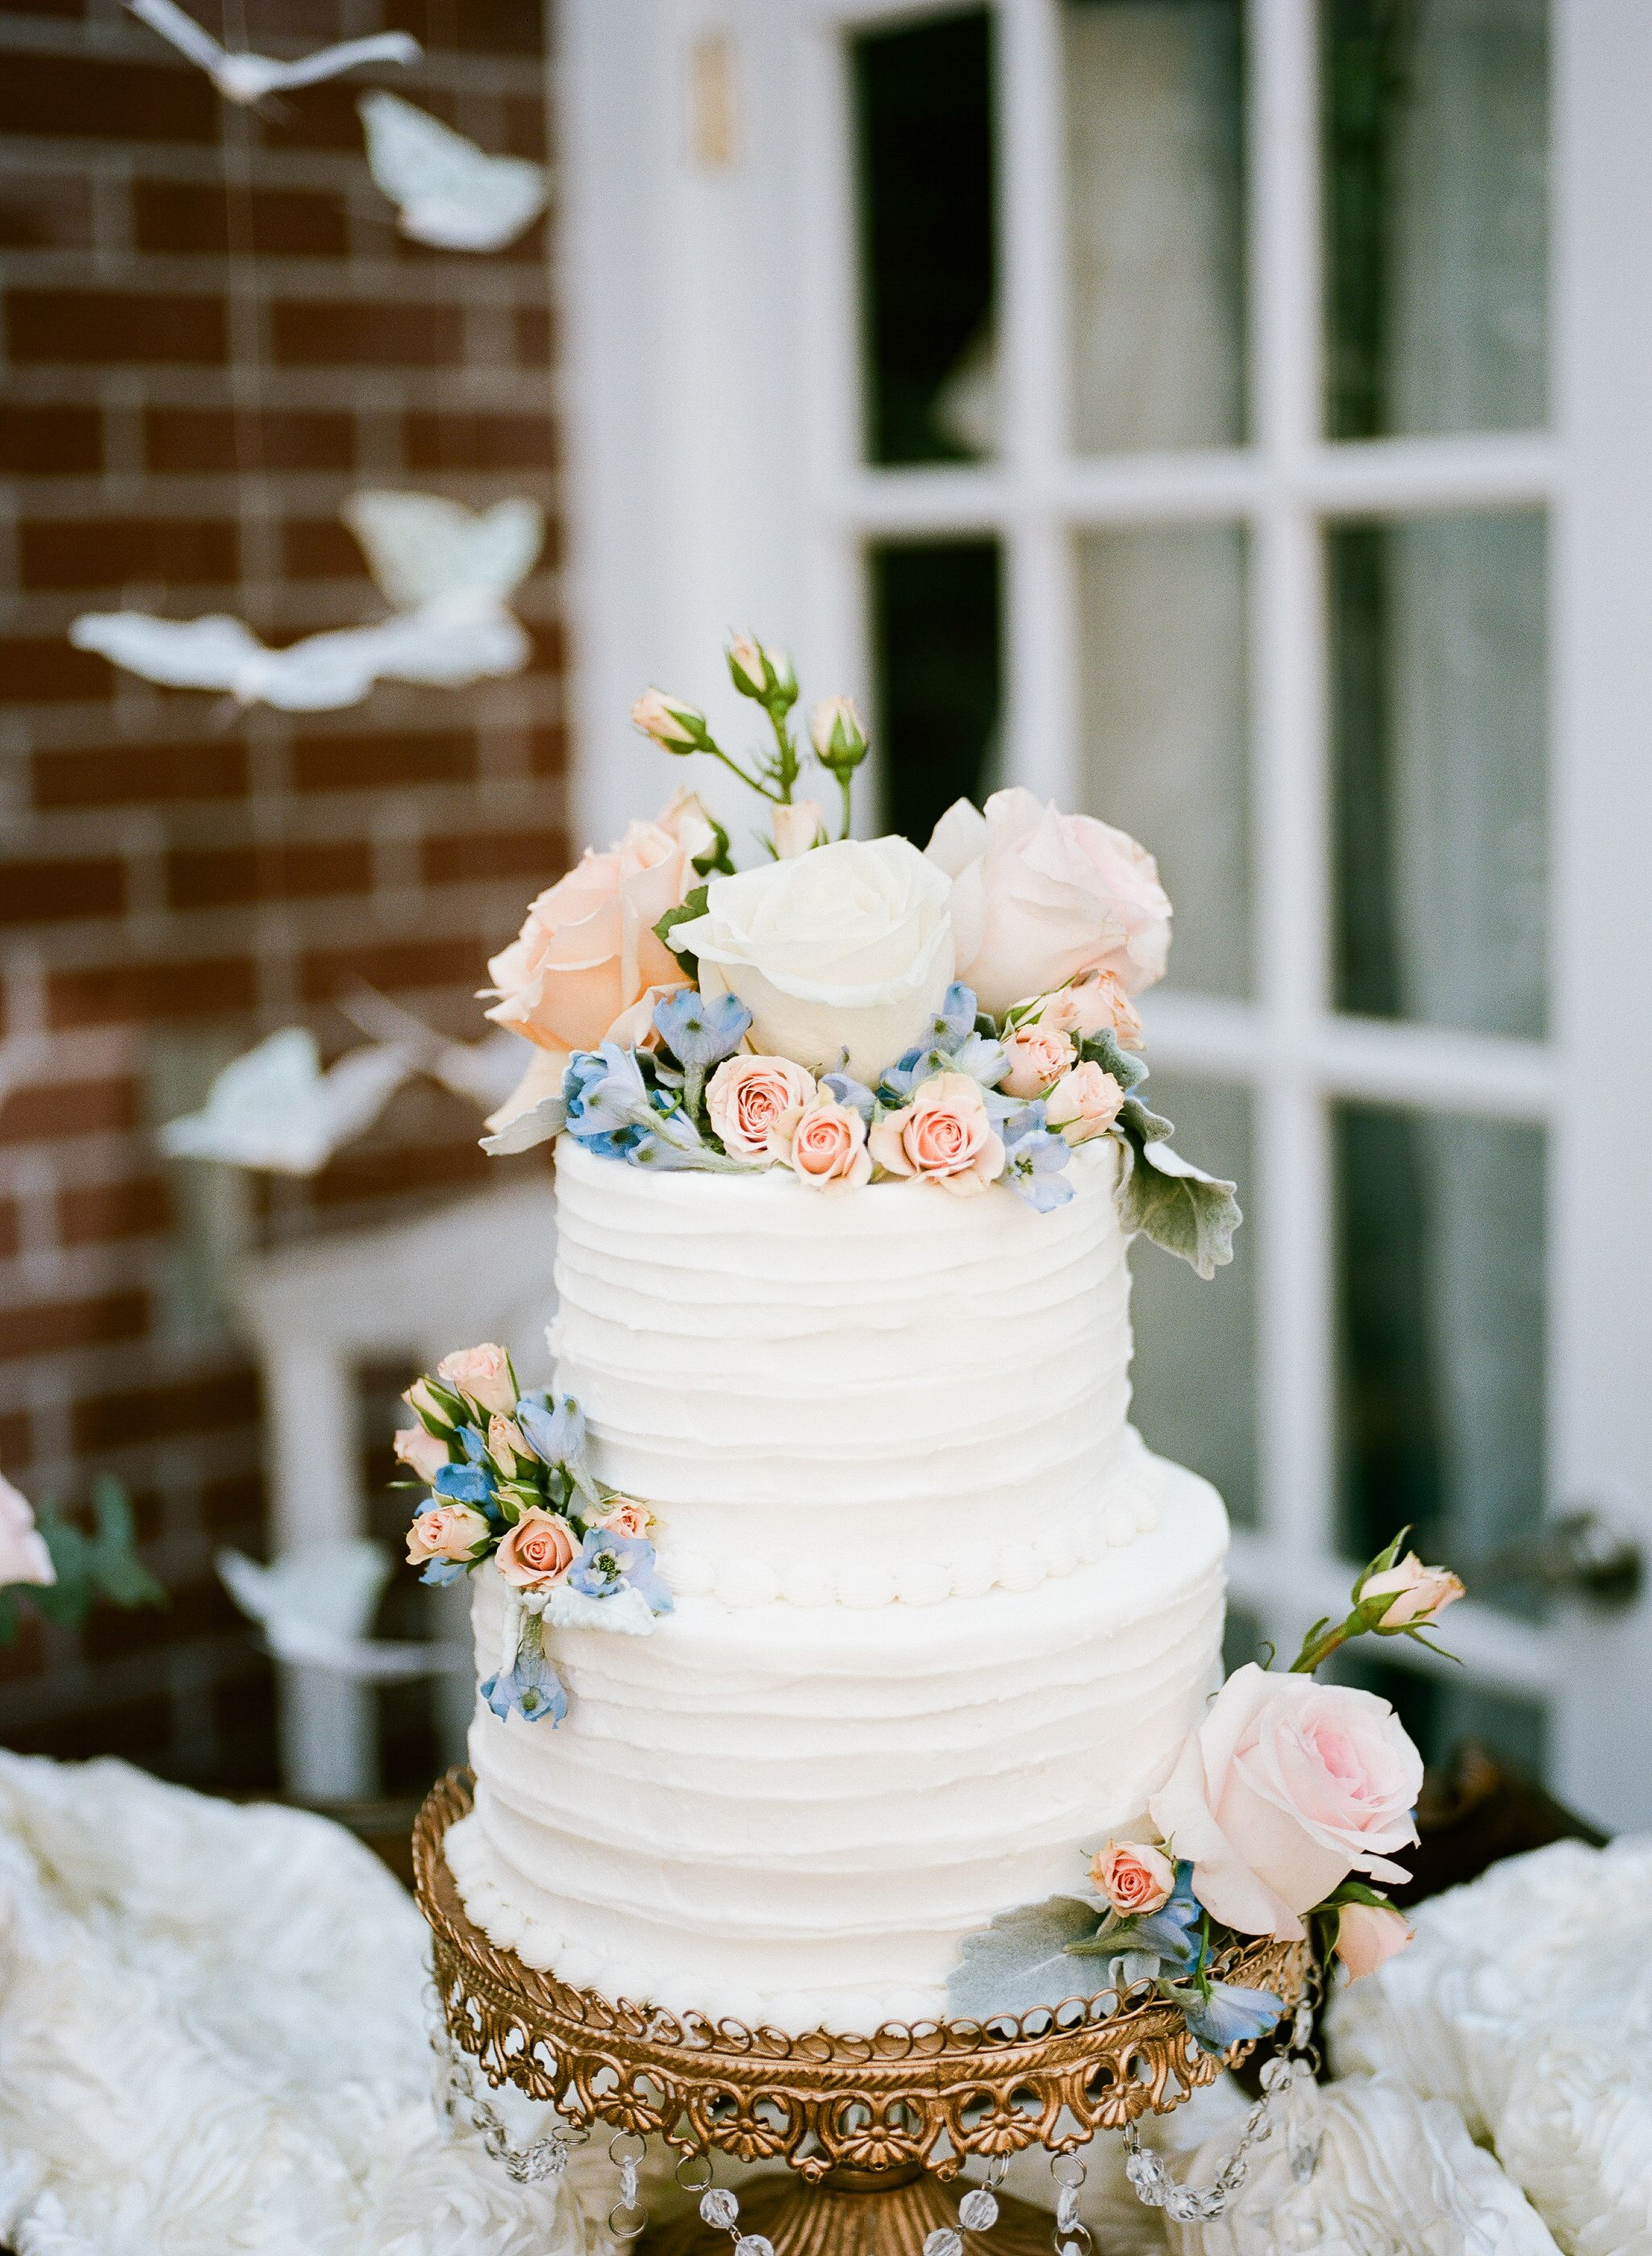 Buttercream wedding cake with blush and blue flowers outdoor buttercream wedding cake with blush and blue flowers izmirmasajfo Images